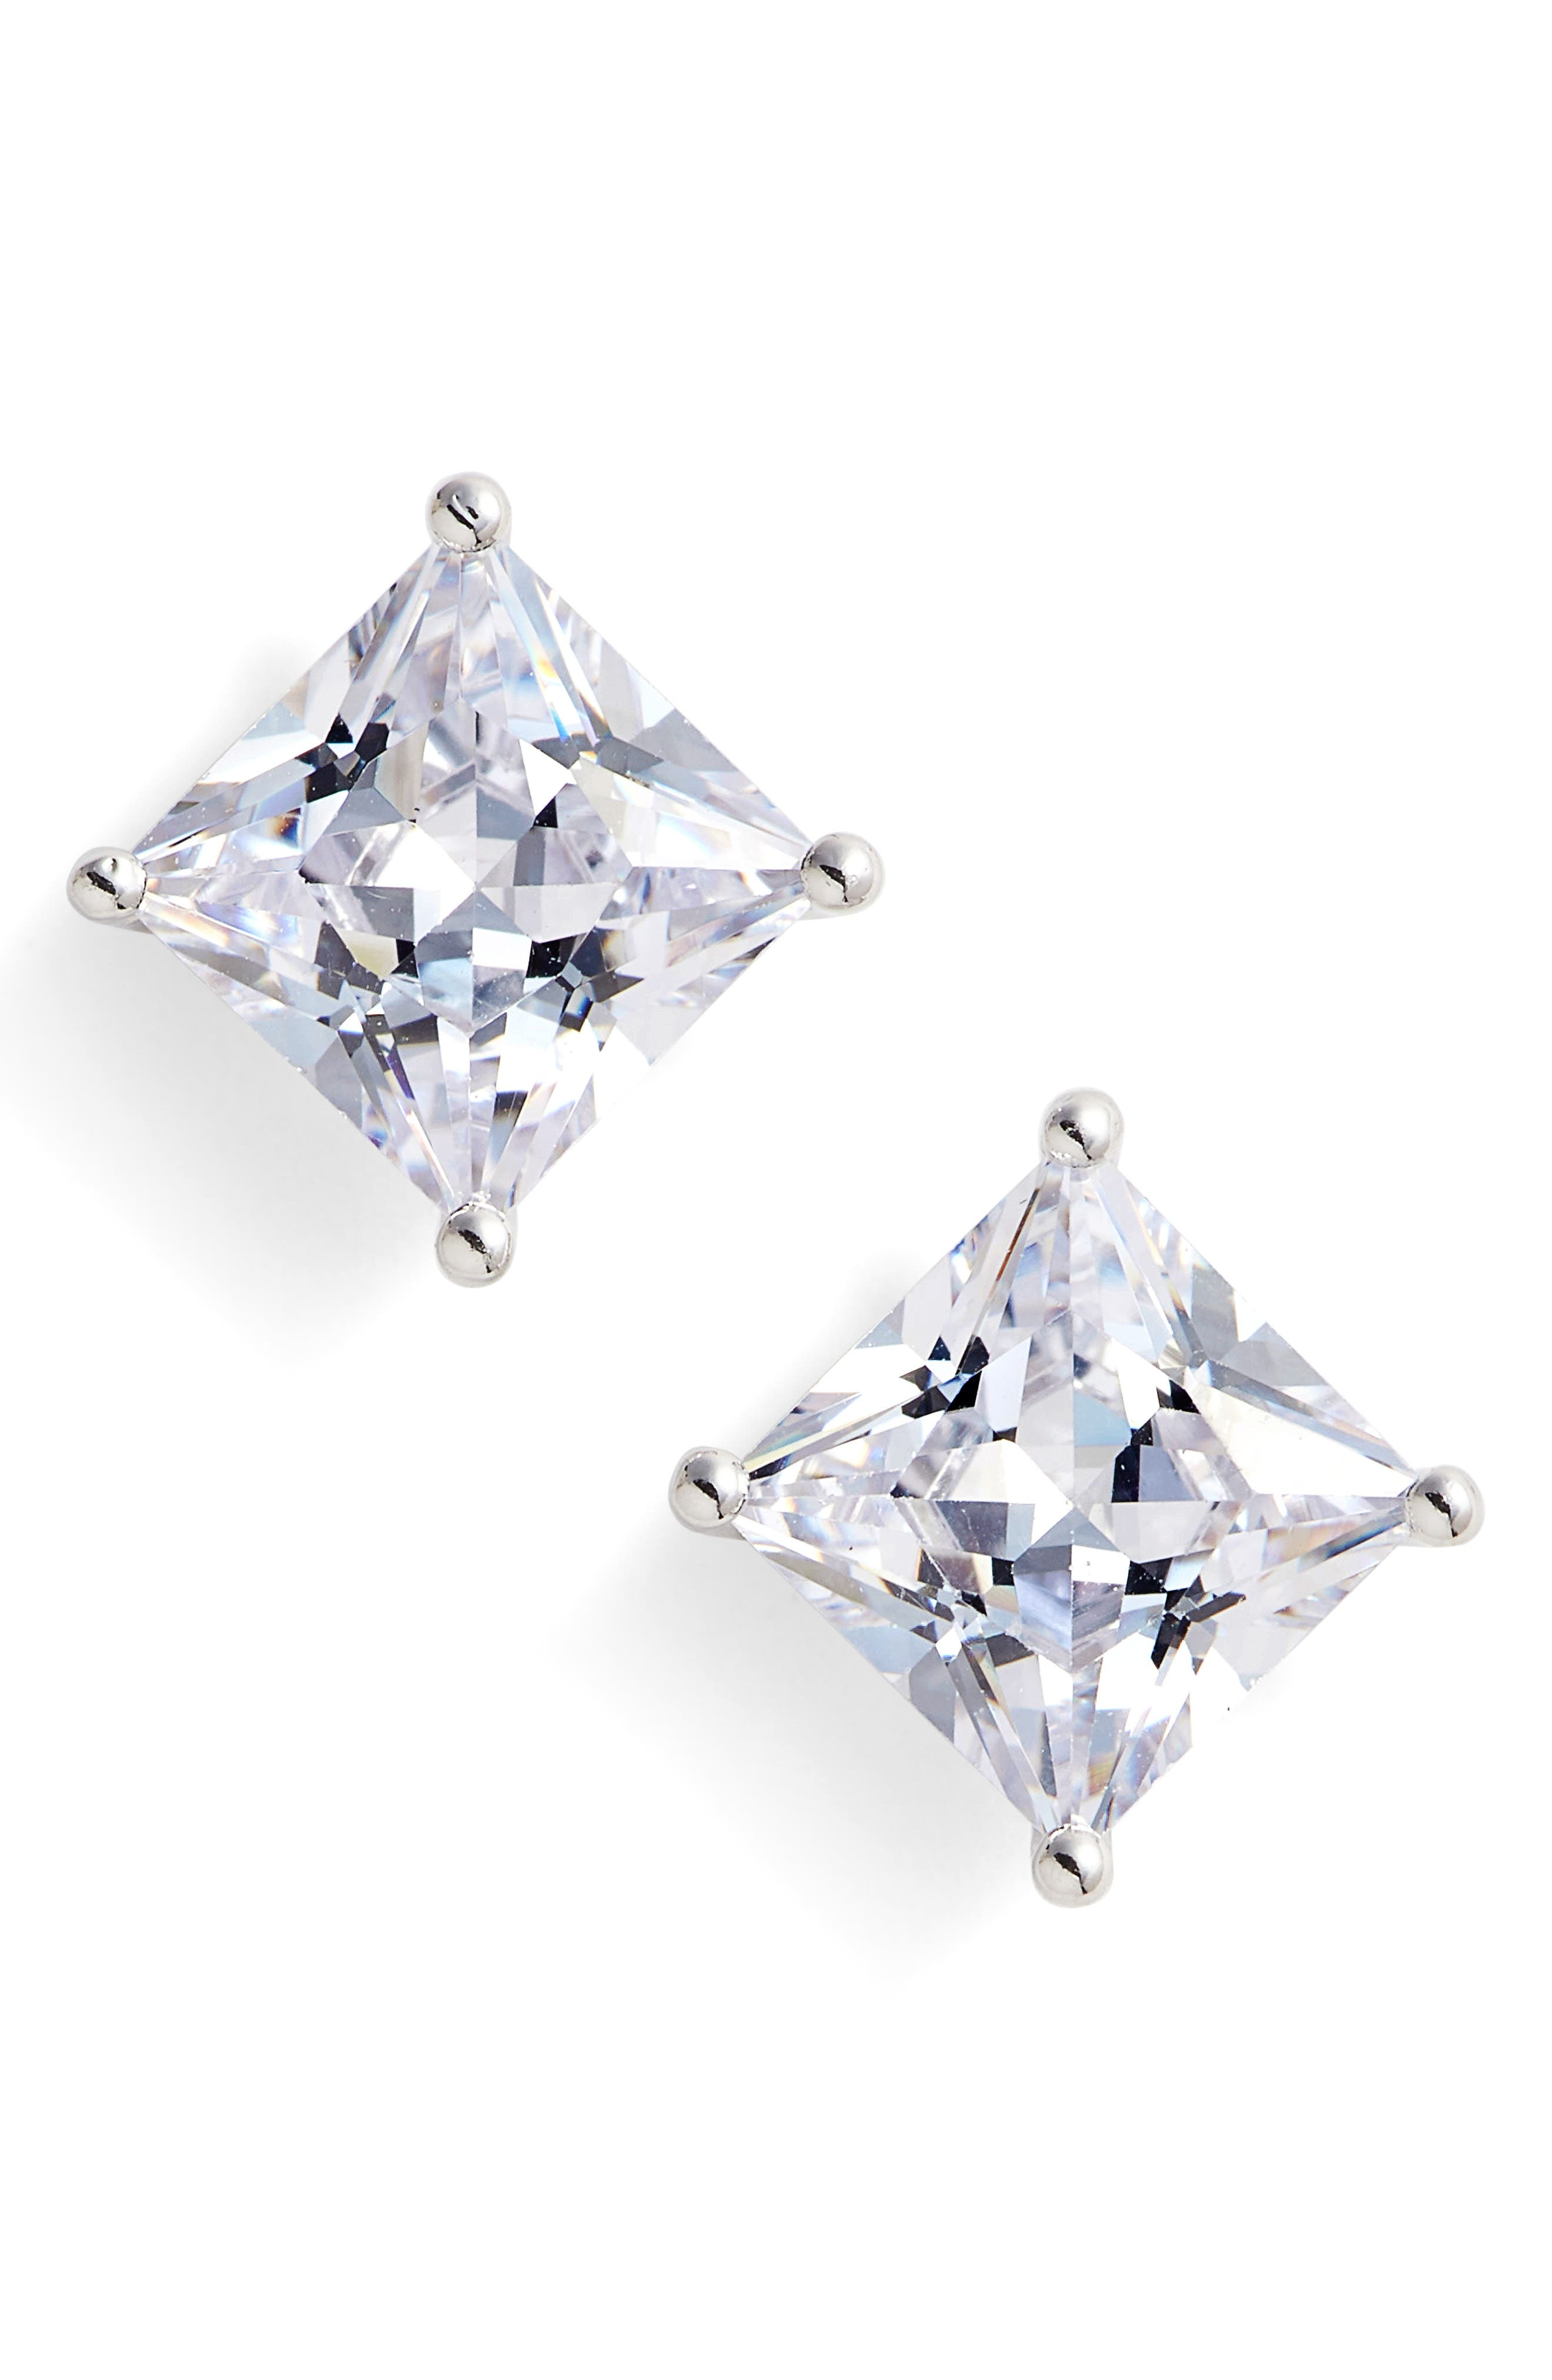 6ct tw Princess Cut Cubic Zirconia Stud Earrings,                             Main thumbnail 1, color,                             040